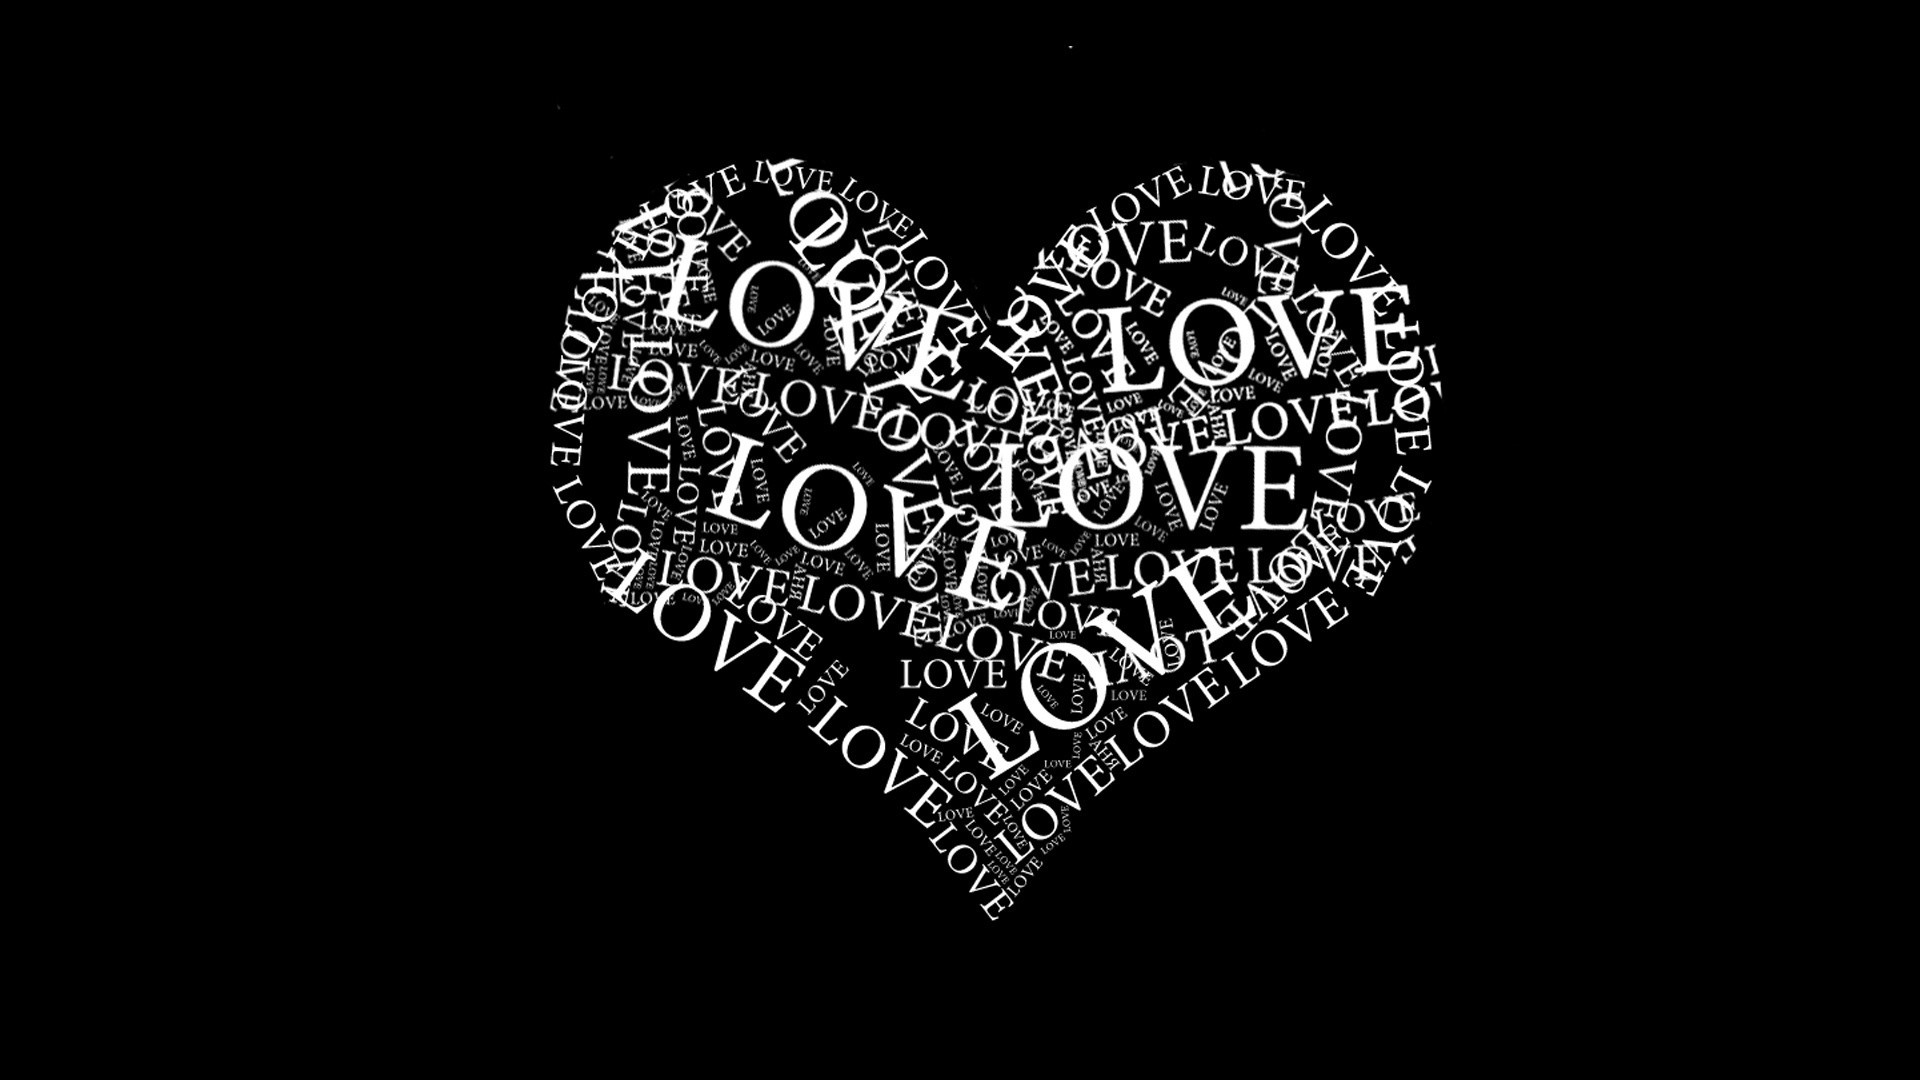 Res: 1920x1080, The Word Love in Black and White Wallpaper 1080p